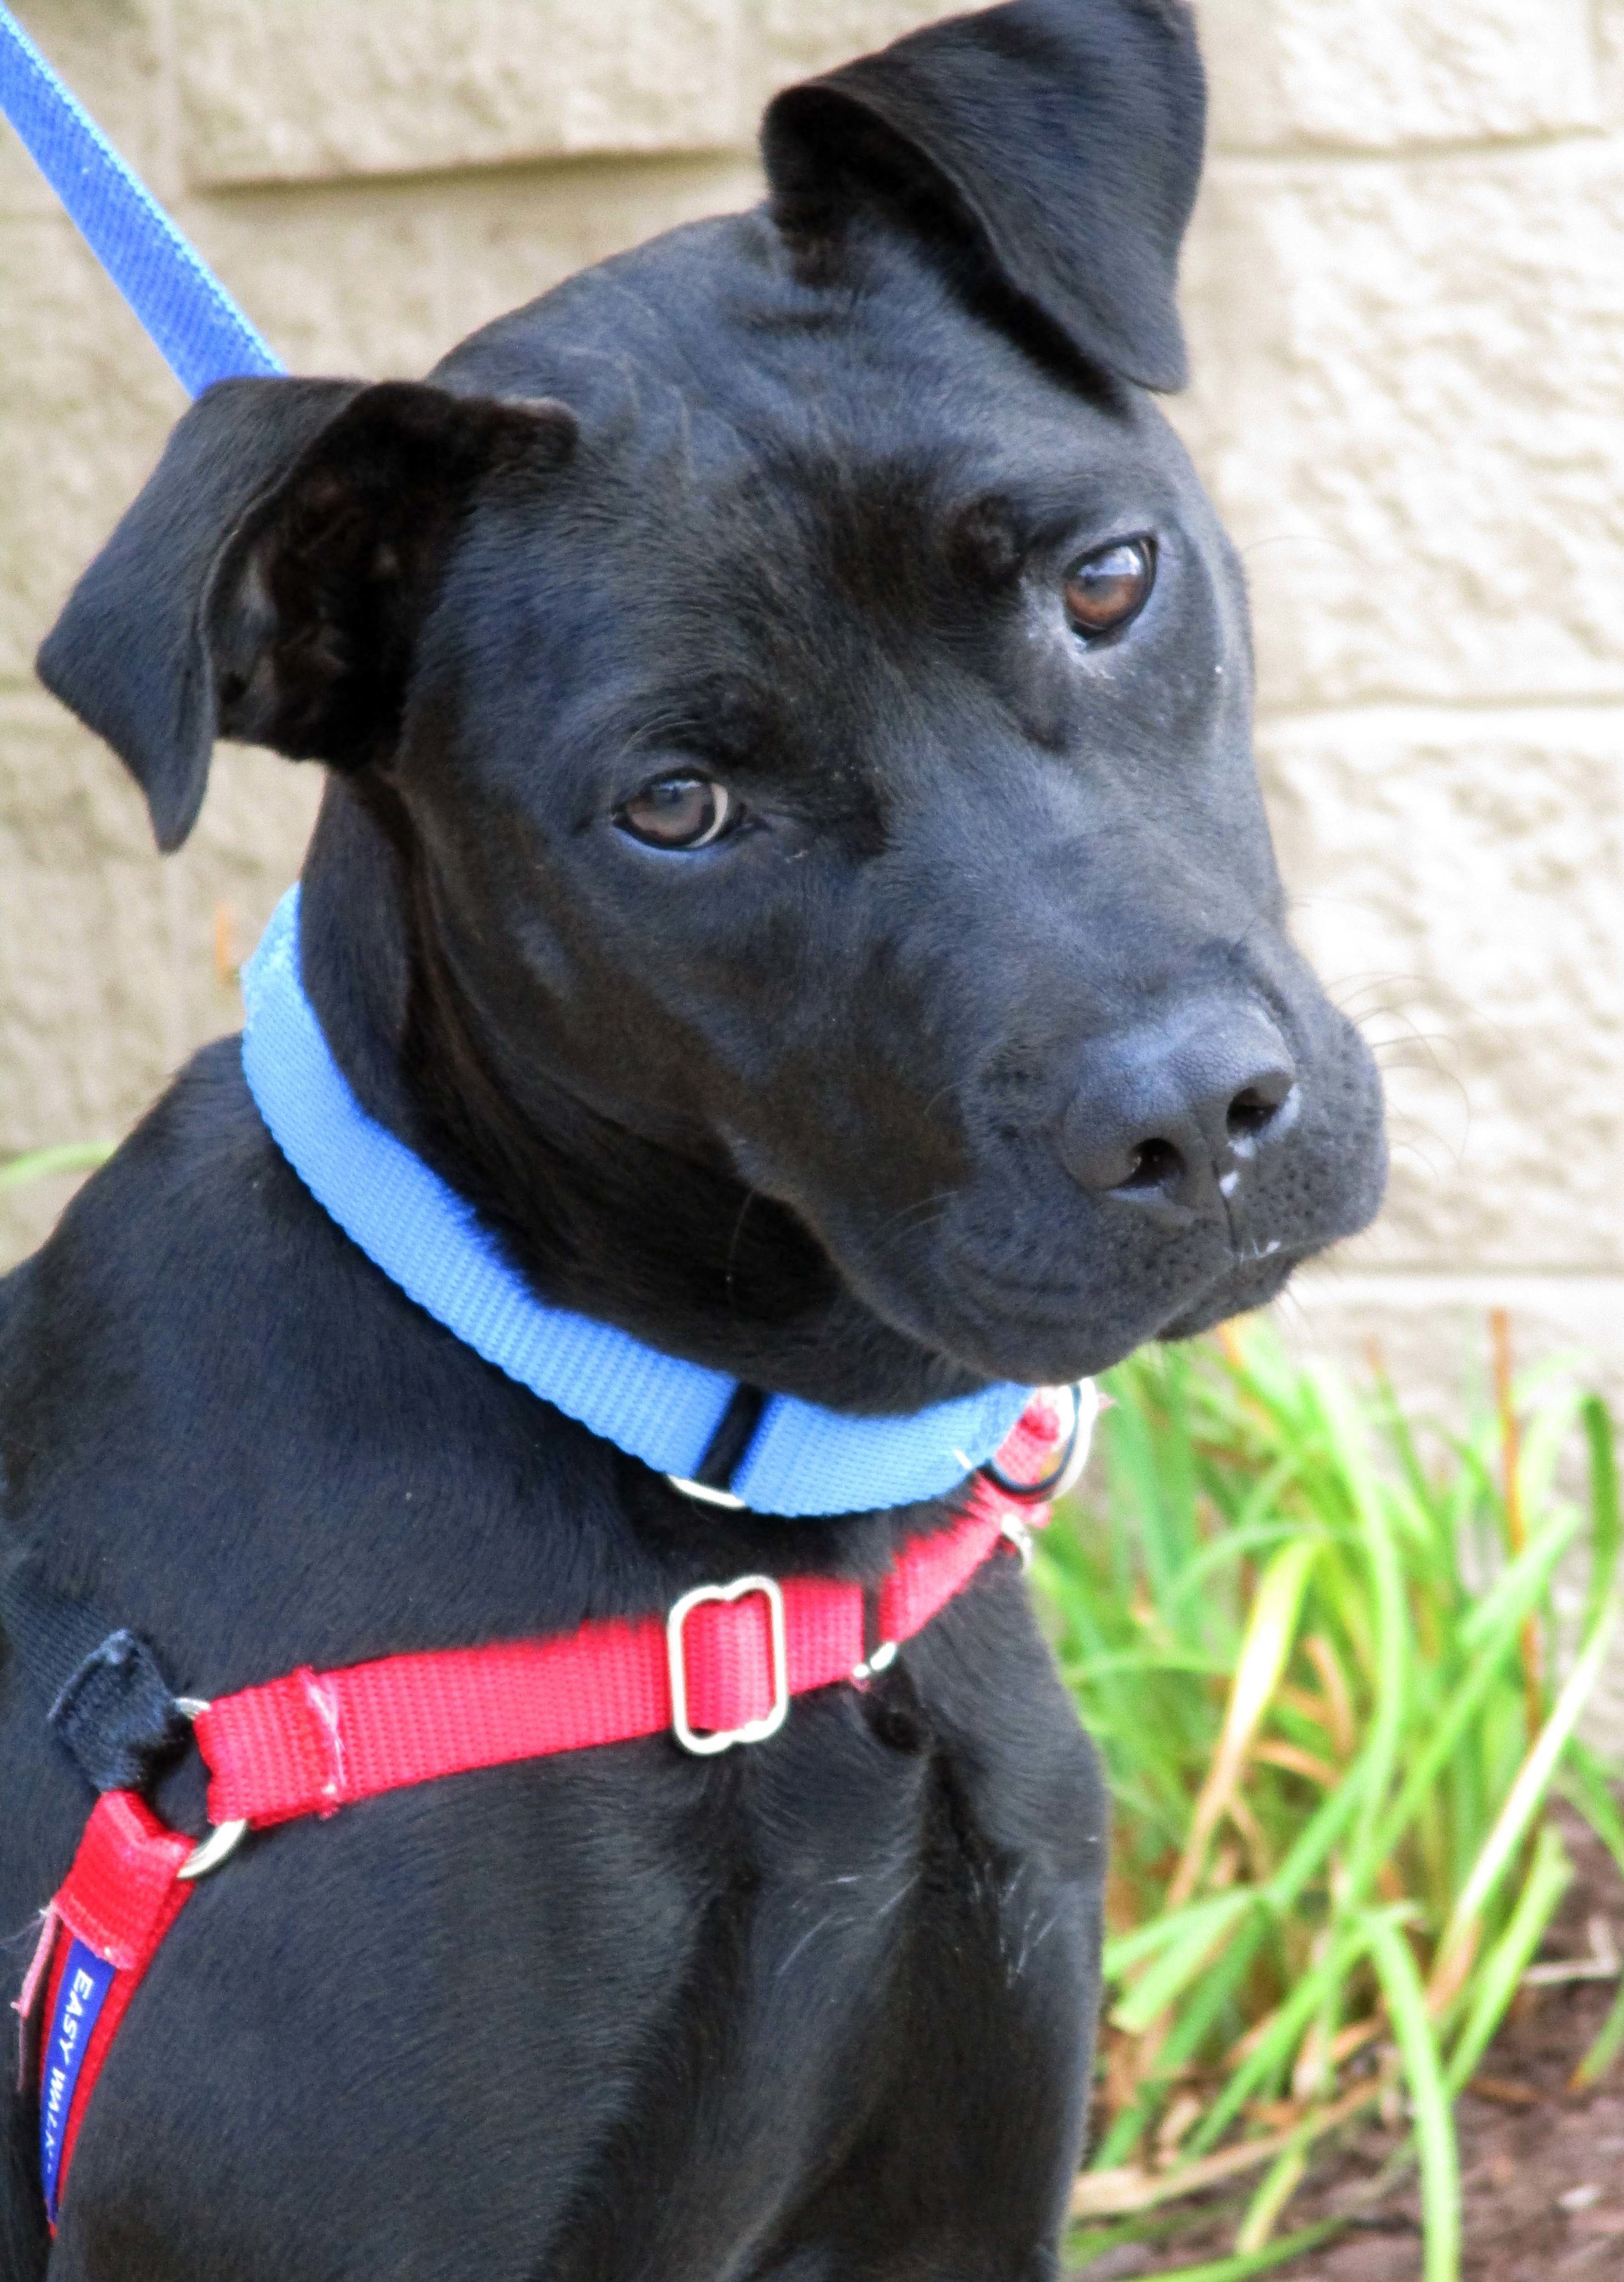 Mina is a 10 month old Labrador Mix. She can be sensitive to her muzzle being handled and she loves her chews. Mina did fine with a cat, but is more selective with dogs. If you can promise a lot of petting and toys, she'd be happy to accept you!